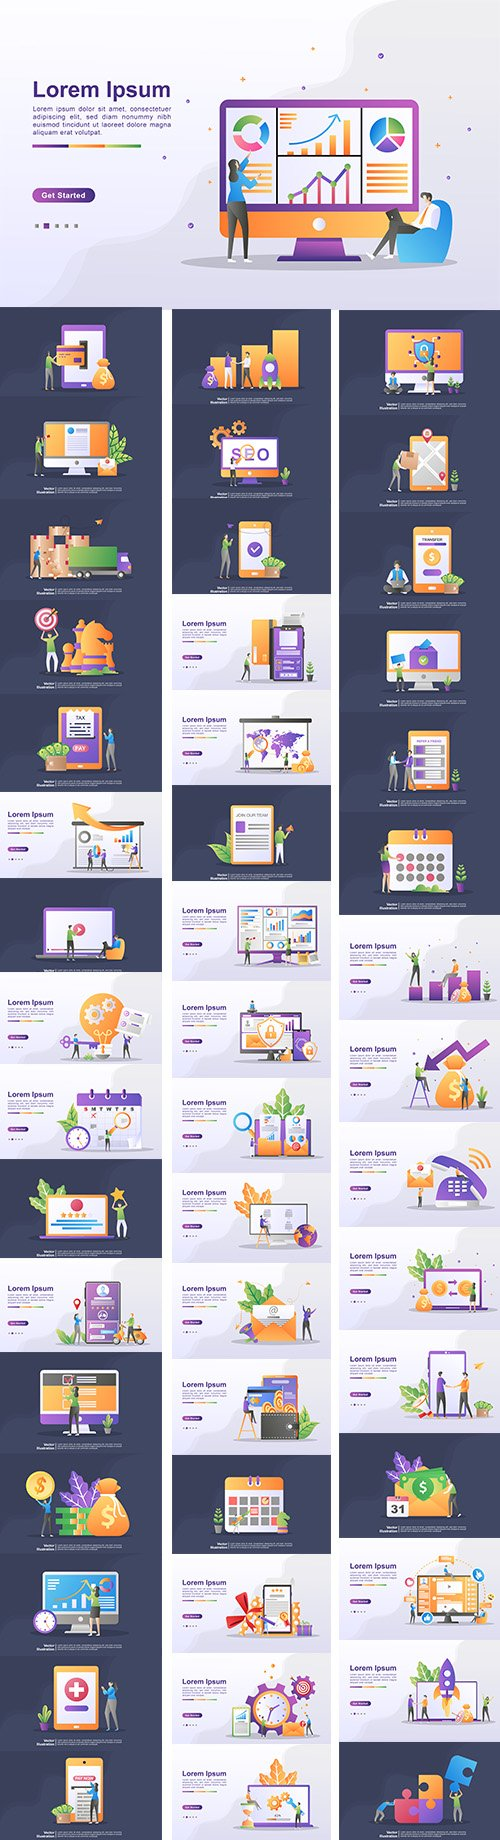 Various Scenes from Life, Business and Work Premium Illustrations Vector Set